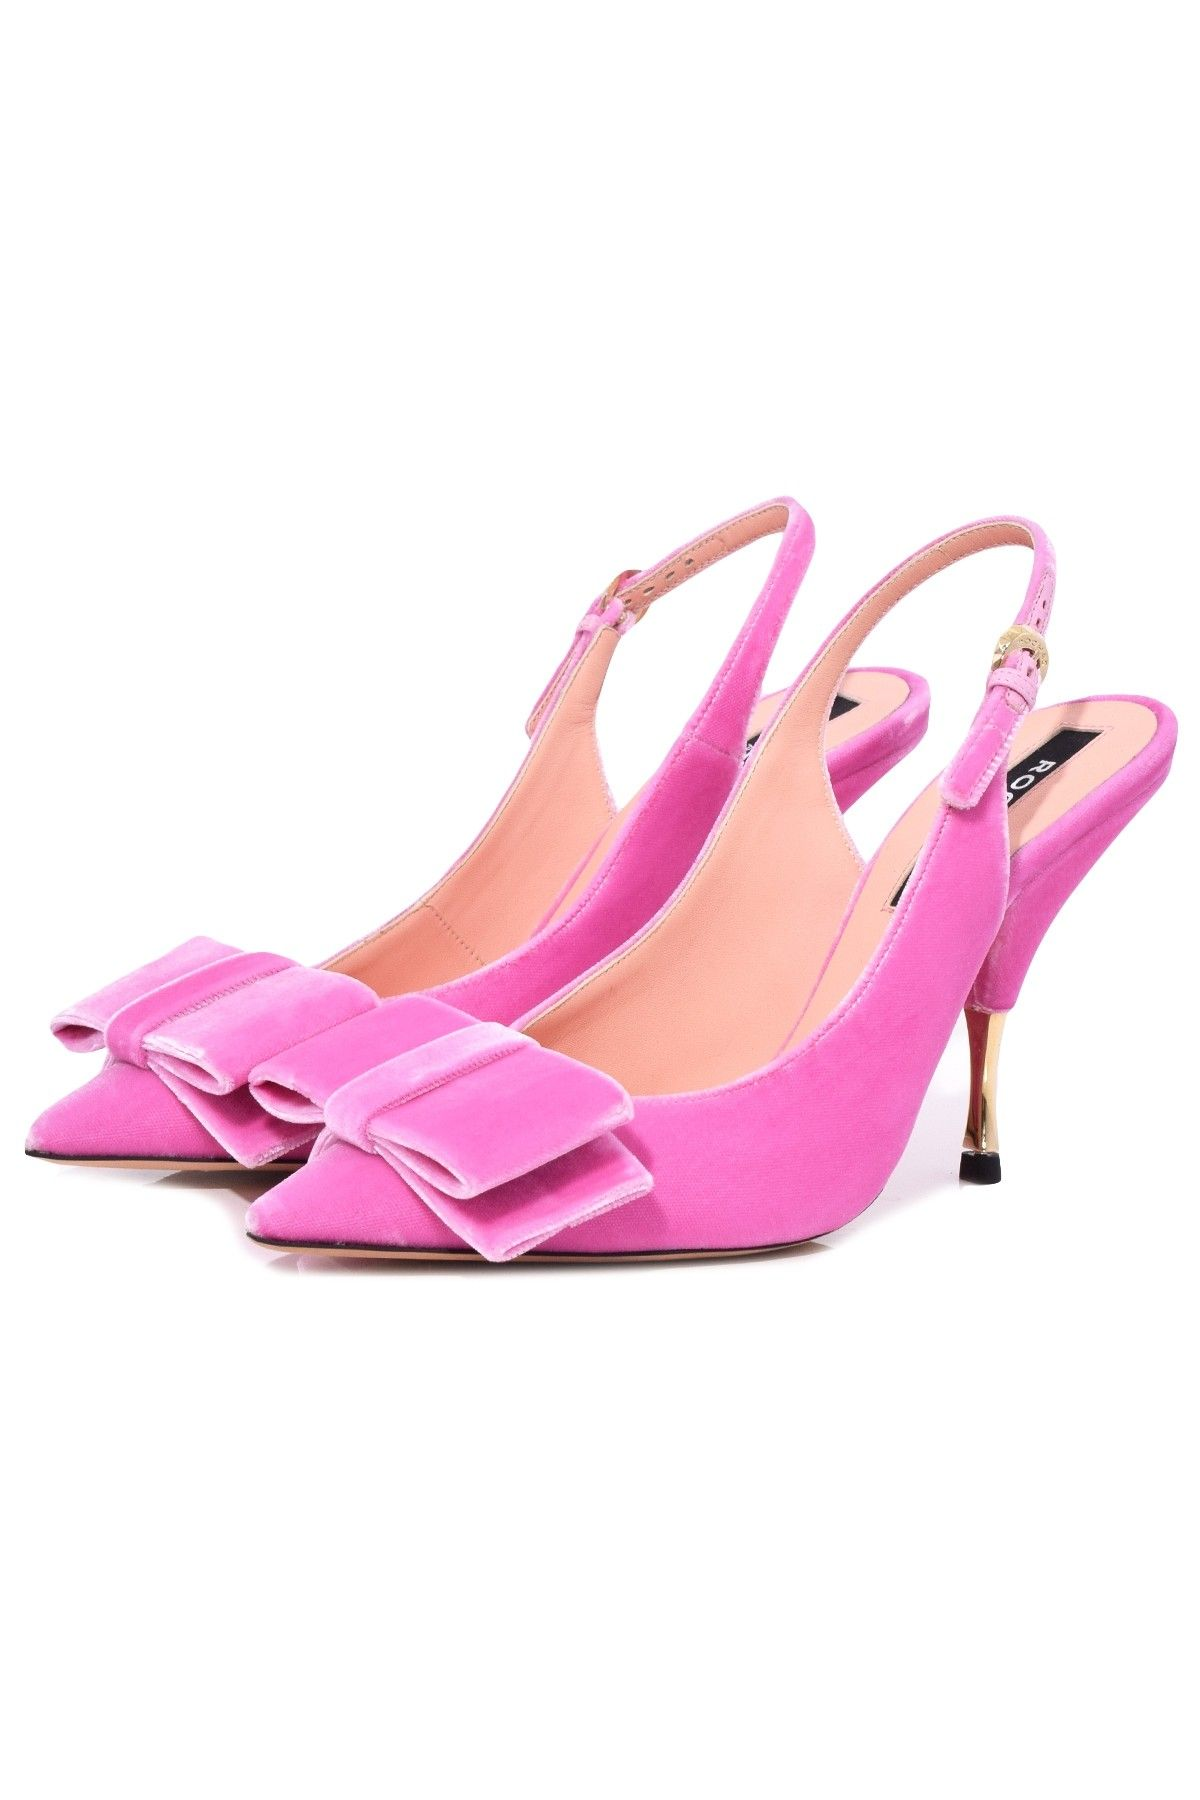 d659256605d Rochas Slingback Pump in Hot Pink Velvet | SLINGBACKS ETC 3 i 2019 ...